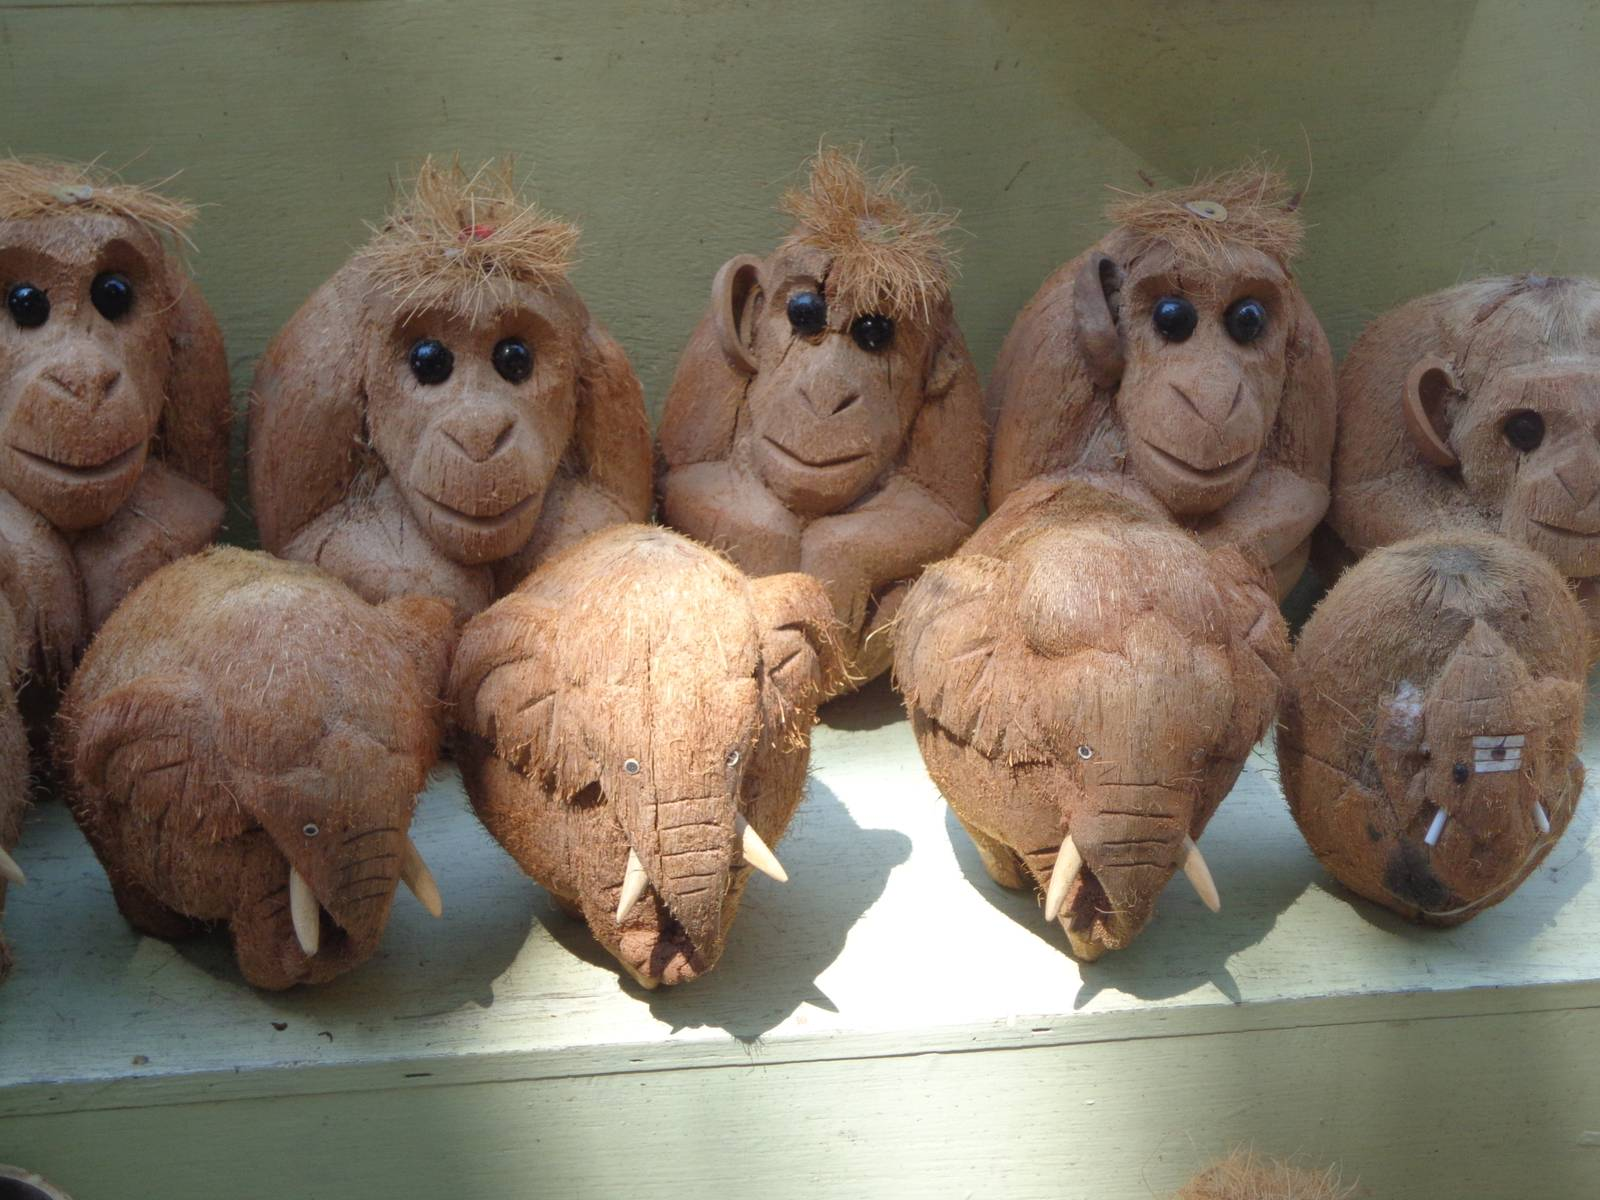 A lot of localites sell locally made goods near tourist attractions. These dolls made of coconut shells were pretty amusing.